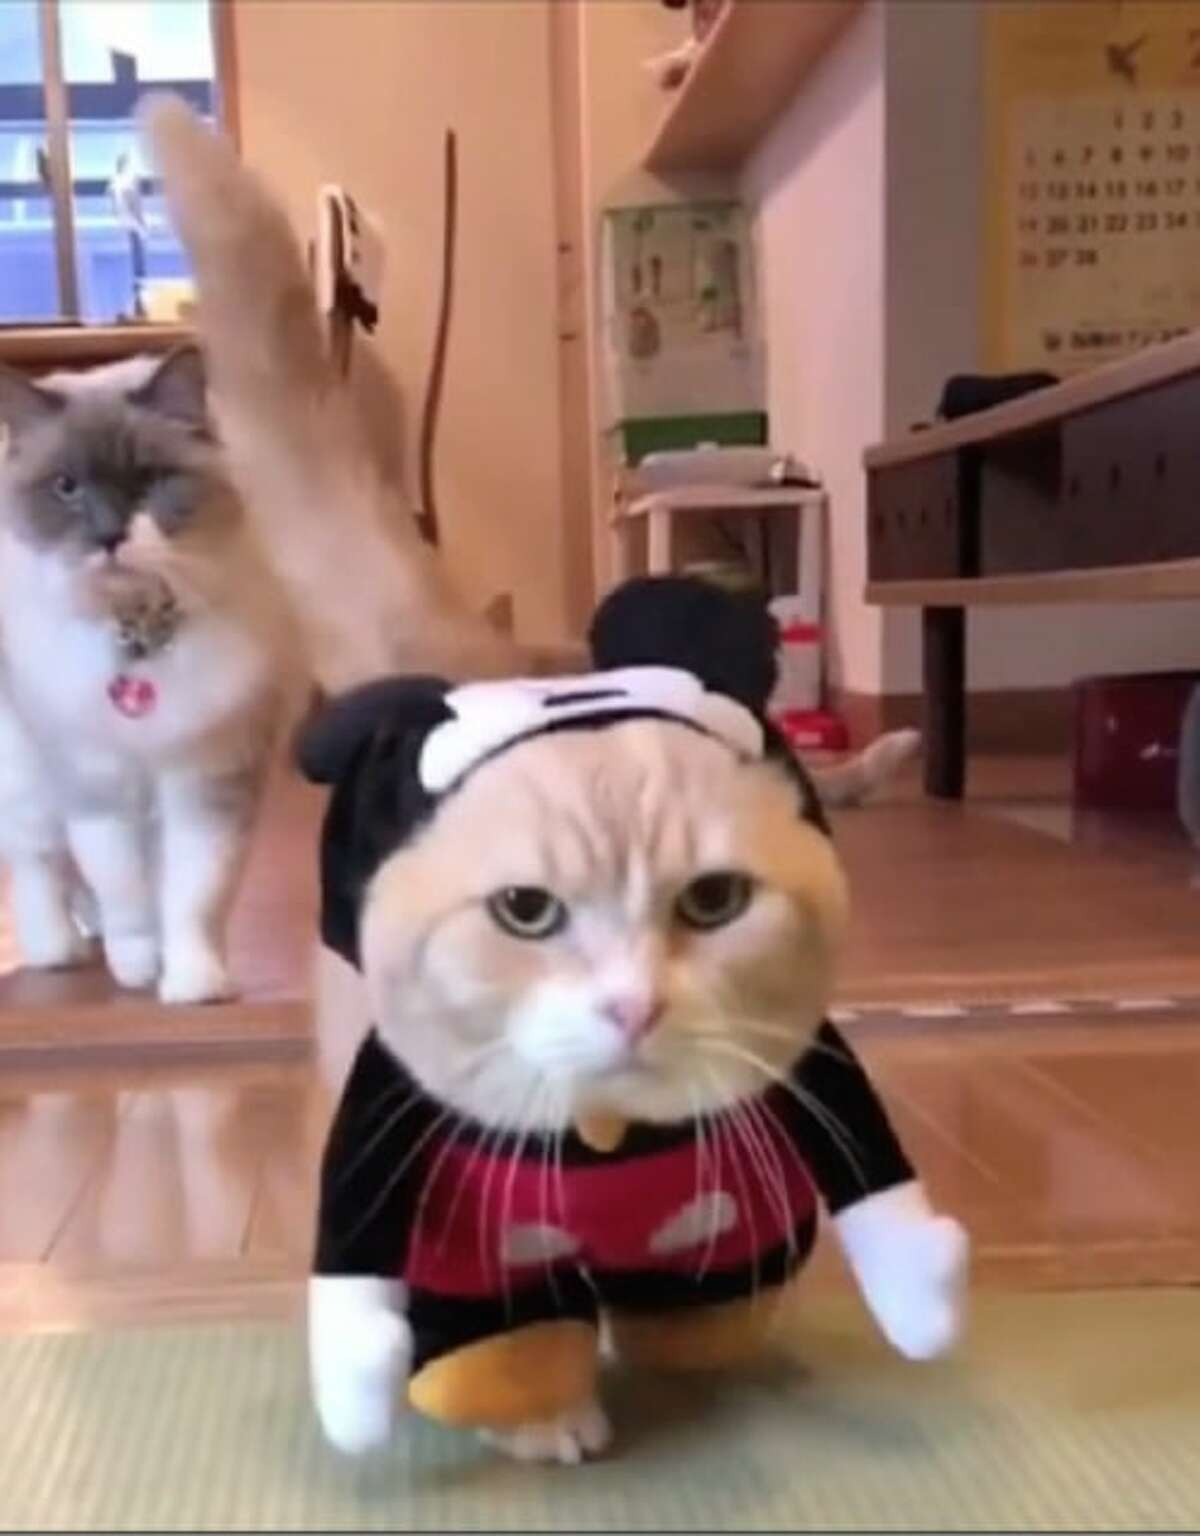 A cat not happy with its owner's fashion choice in a video at CatVideoFest